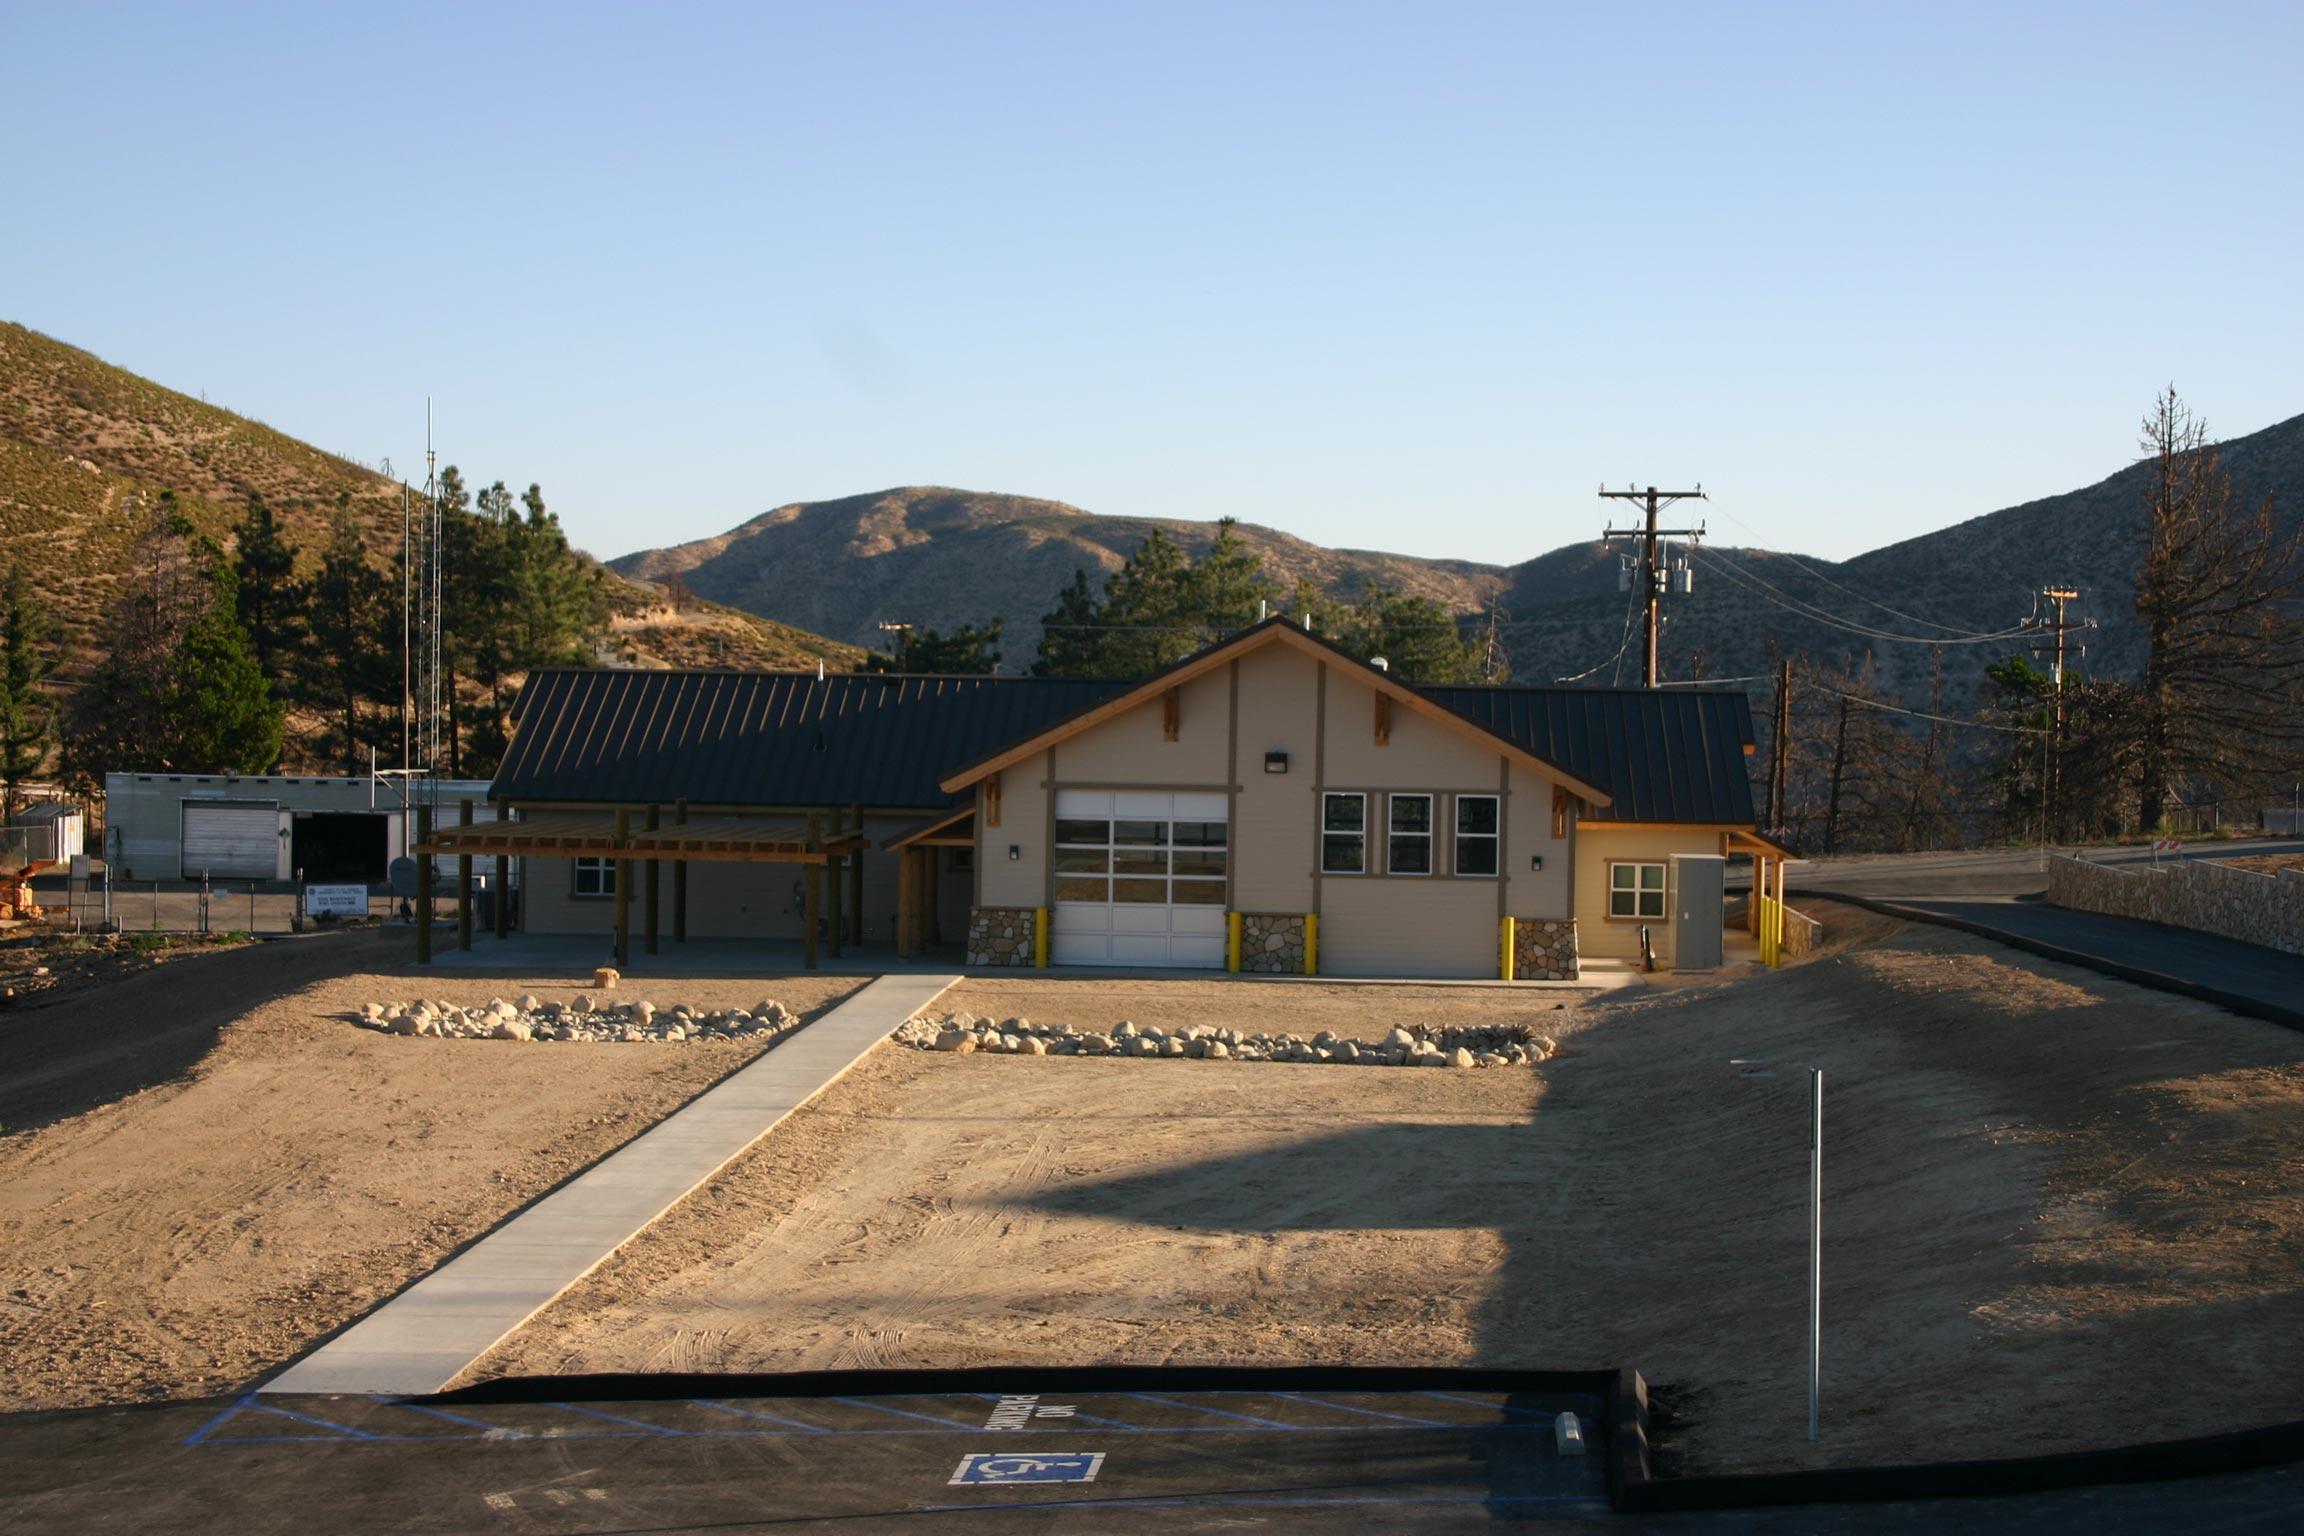 USDA Forest Service, Mill Creek Fire Station & Barracks